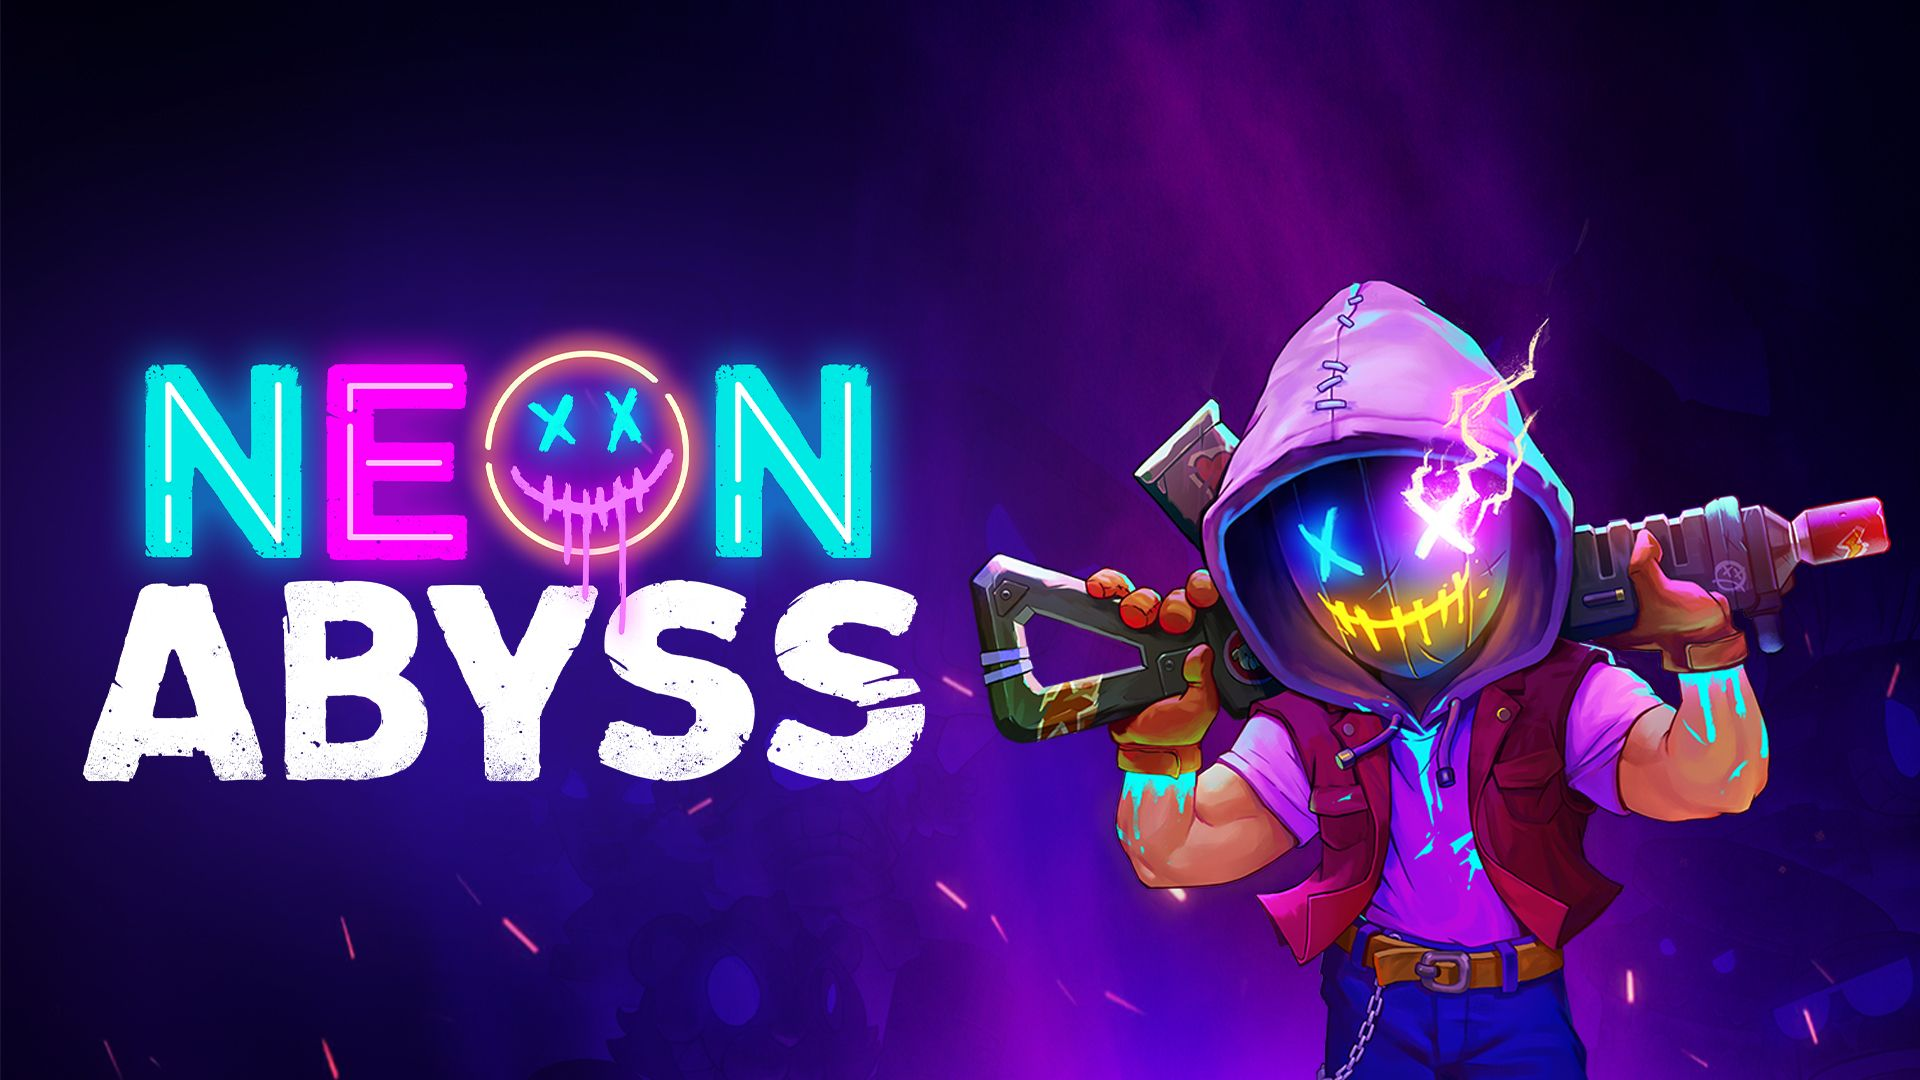 Neon Abyss for Nintendo Switch Nintendo Game Details in